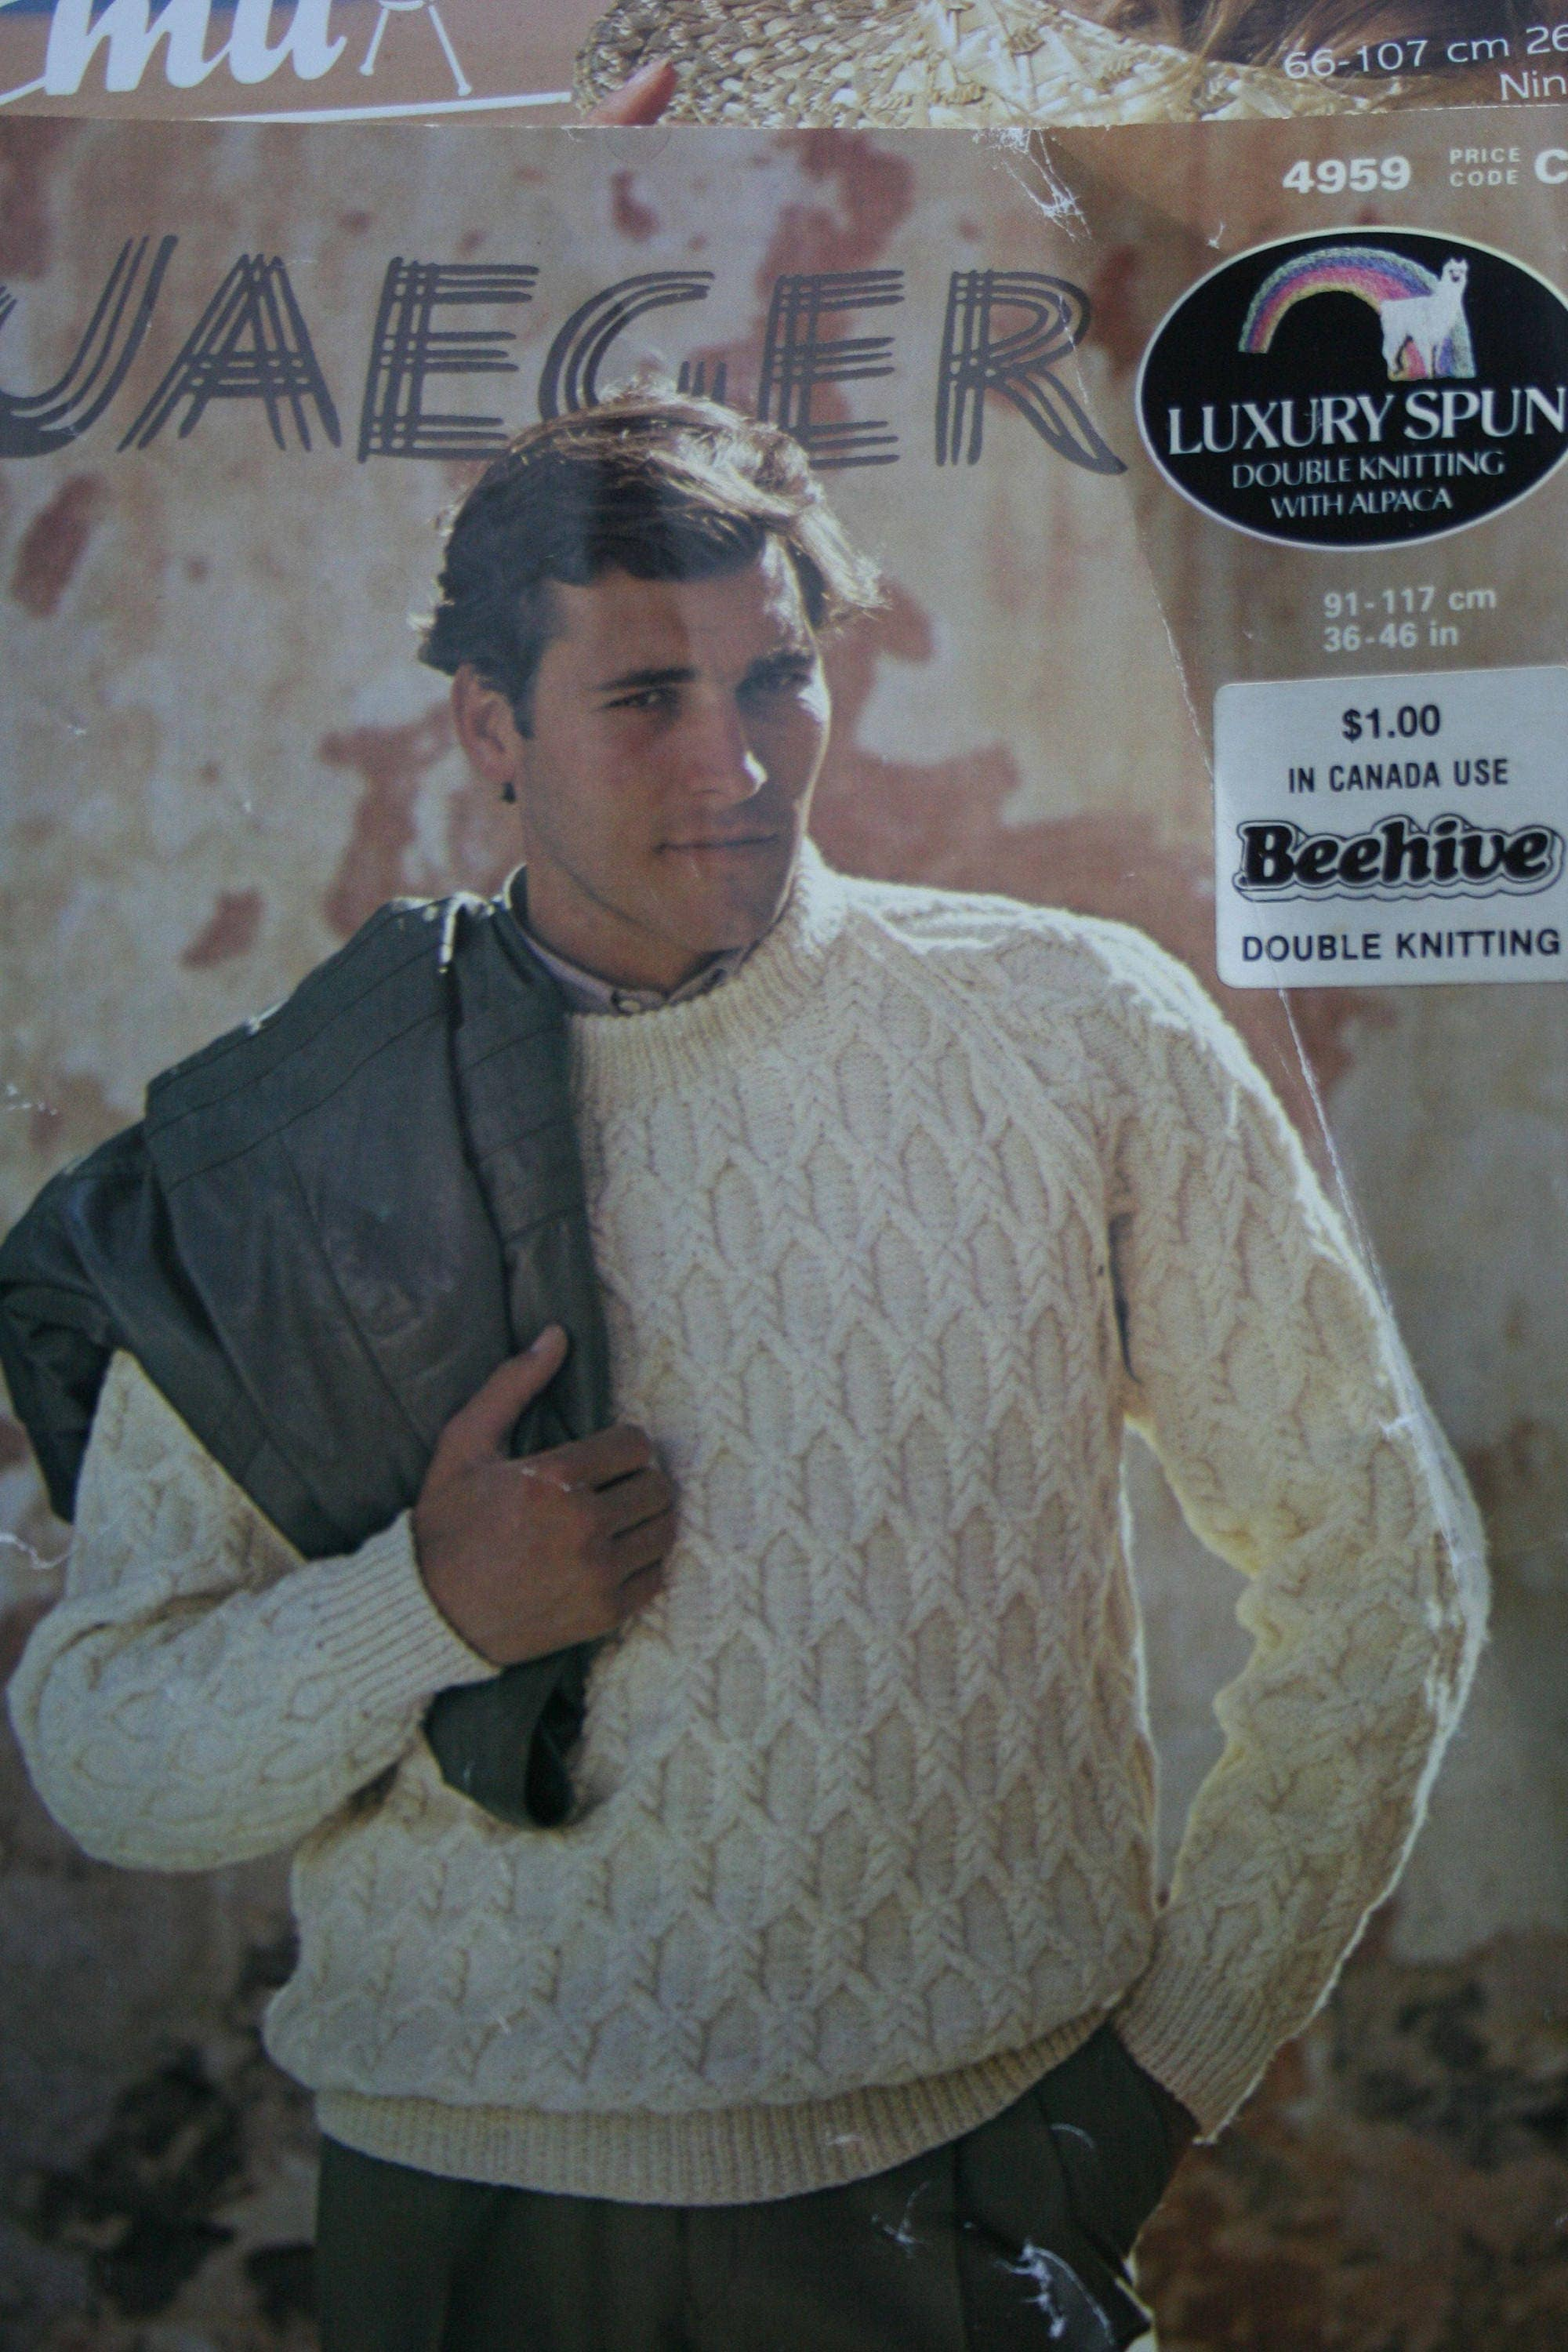 Sweater knitting pattern jaeger 4959 sizes 36 46 inches 91 117 495 bankloansurffo Images